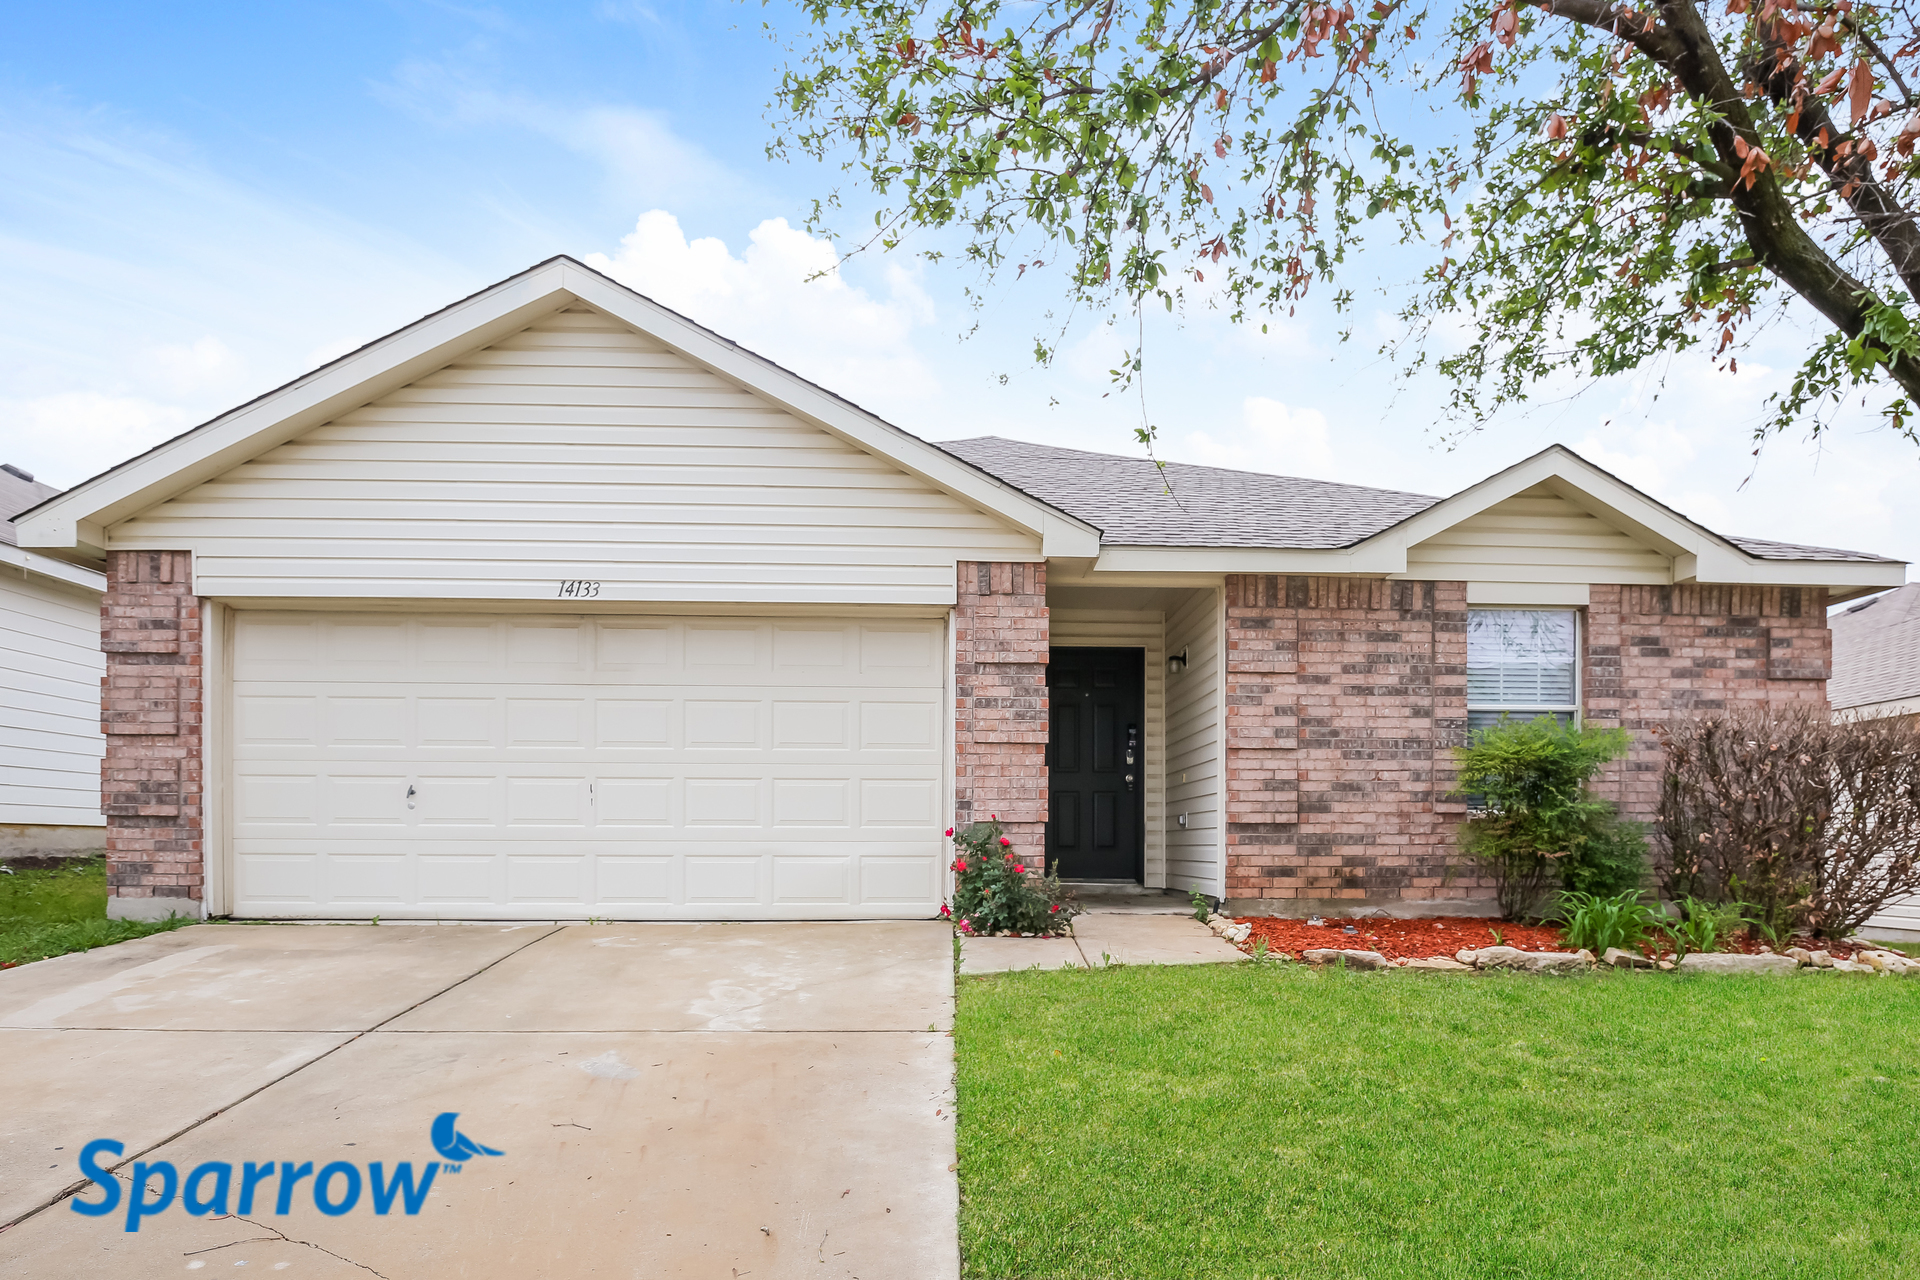 Ft. Worth Home for Rent